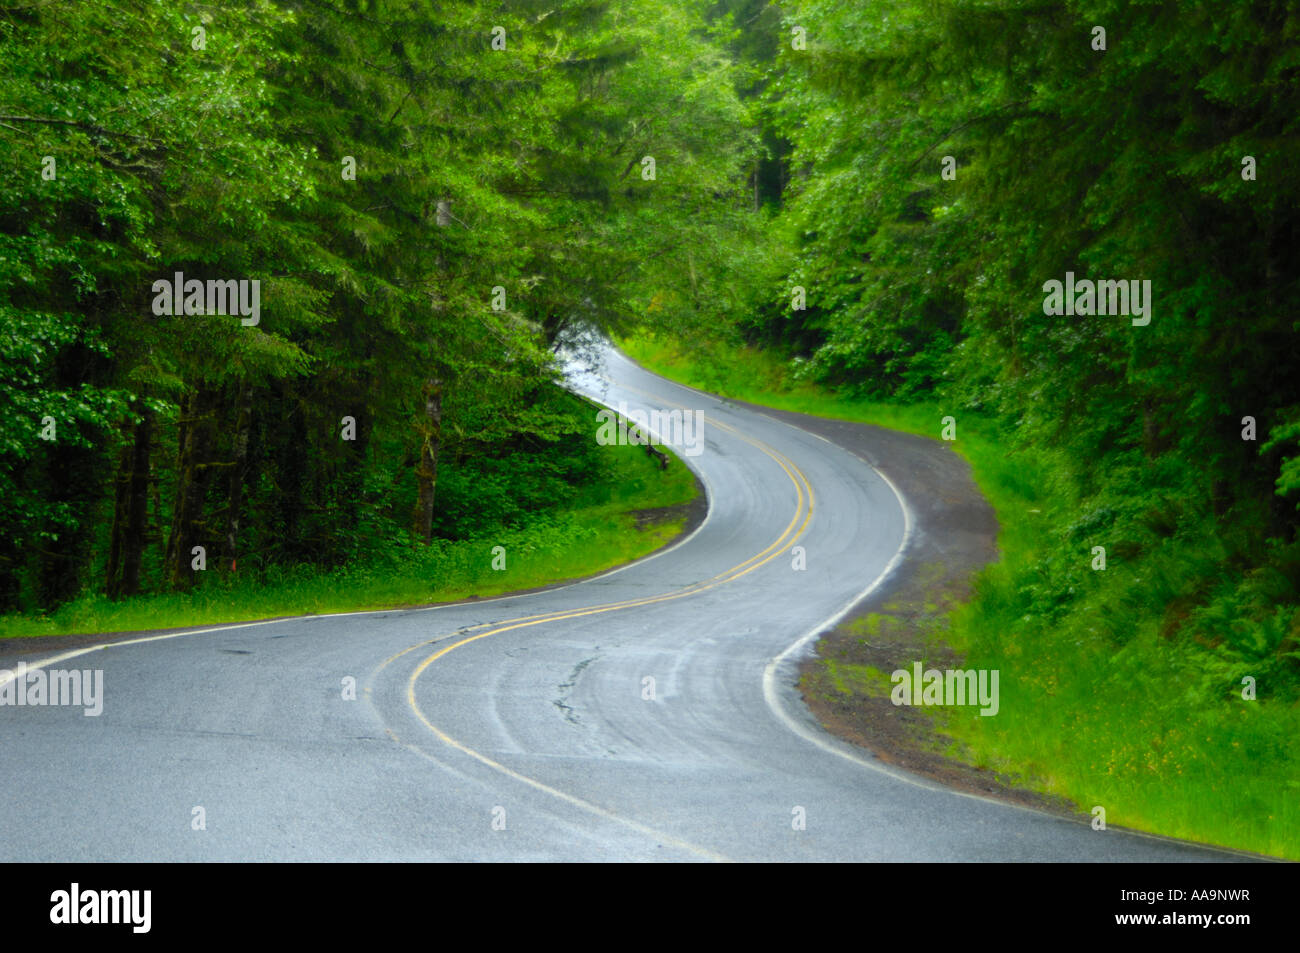 Road into the forest - Stock Image